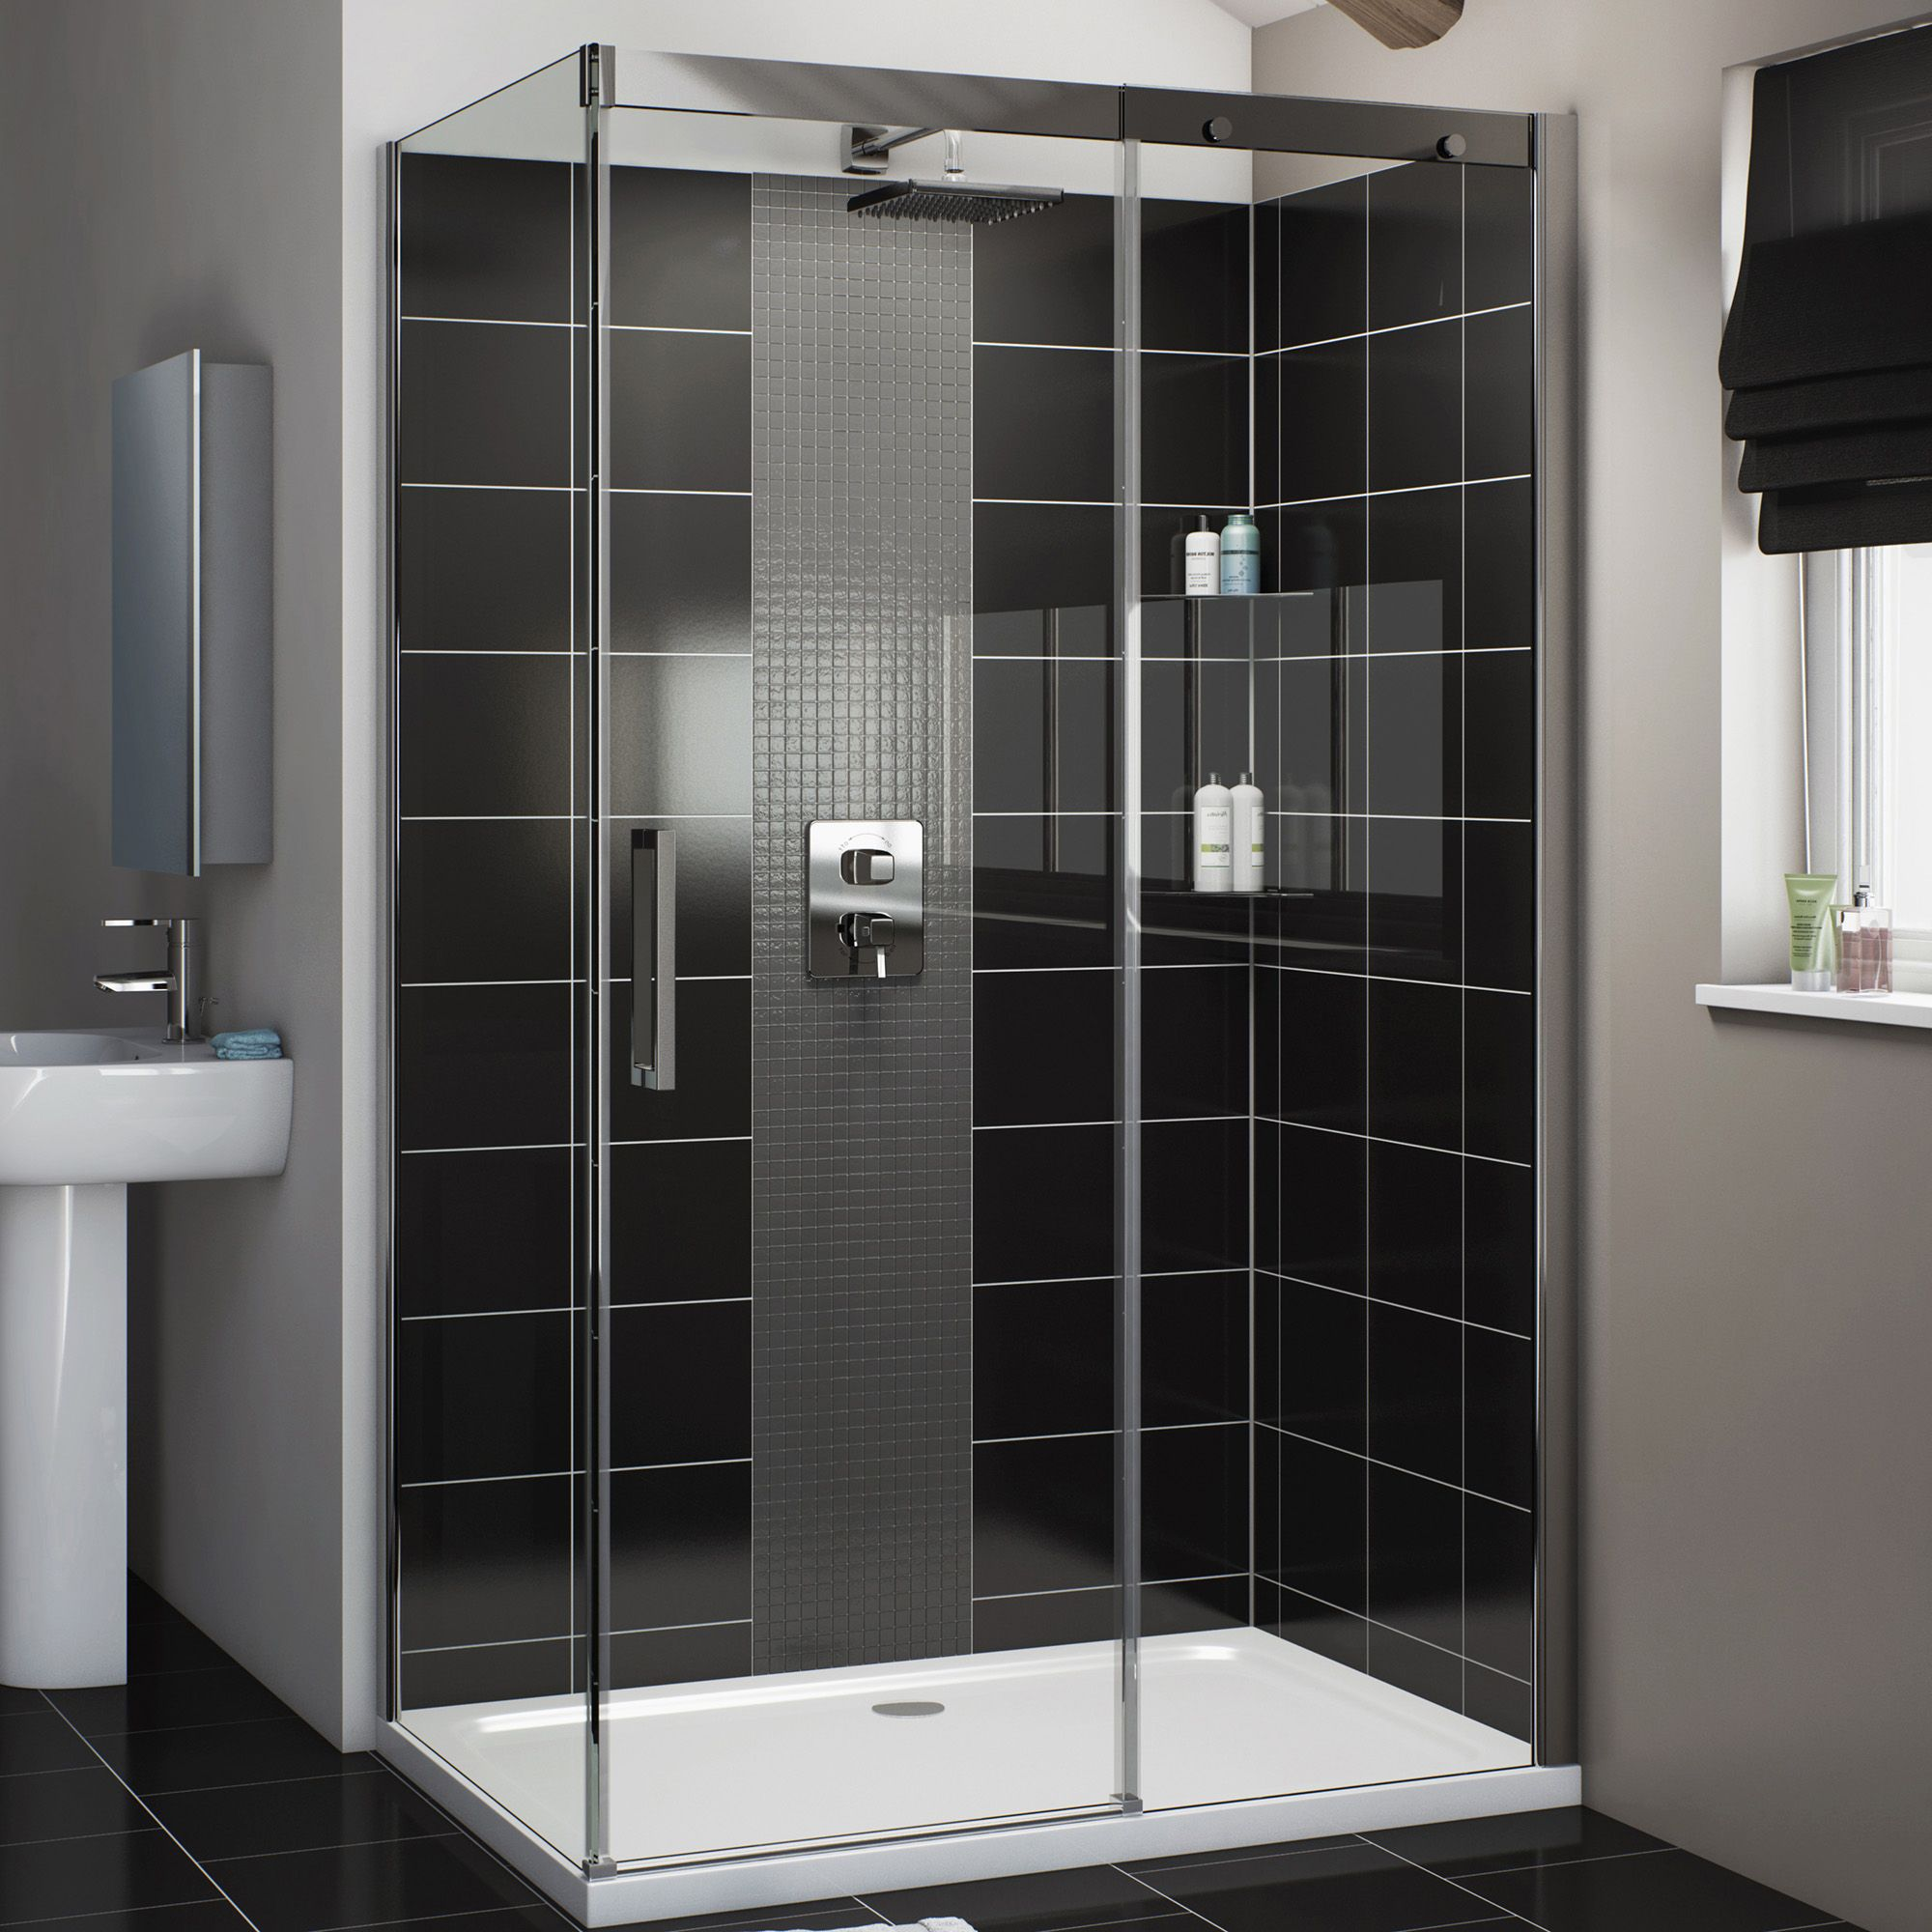 Cooke & Lewis Carmony Rectangular Rh Shower Enclosure, Tray & Waste Pack With Single Sliding Soft Close Door (w)1200mm (